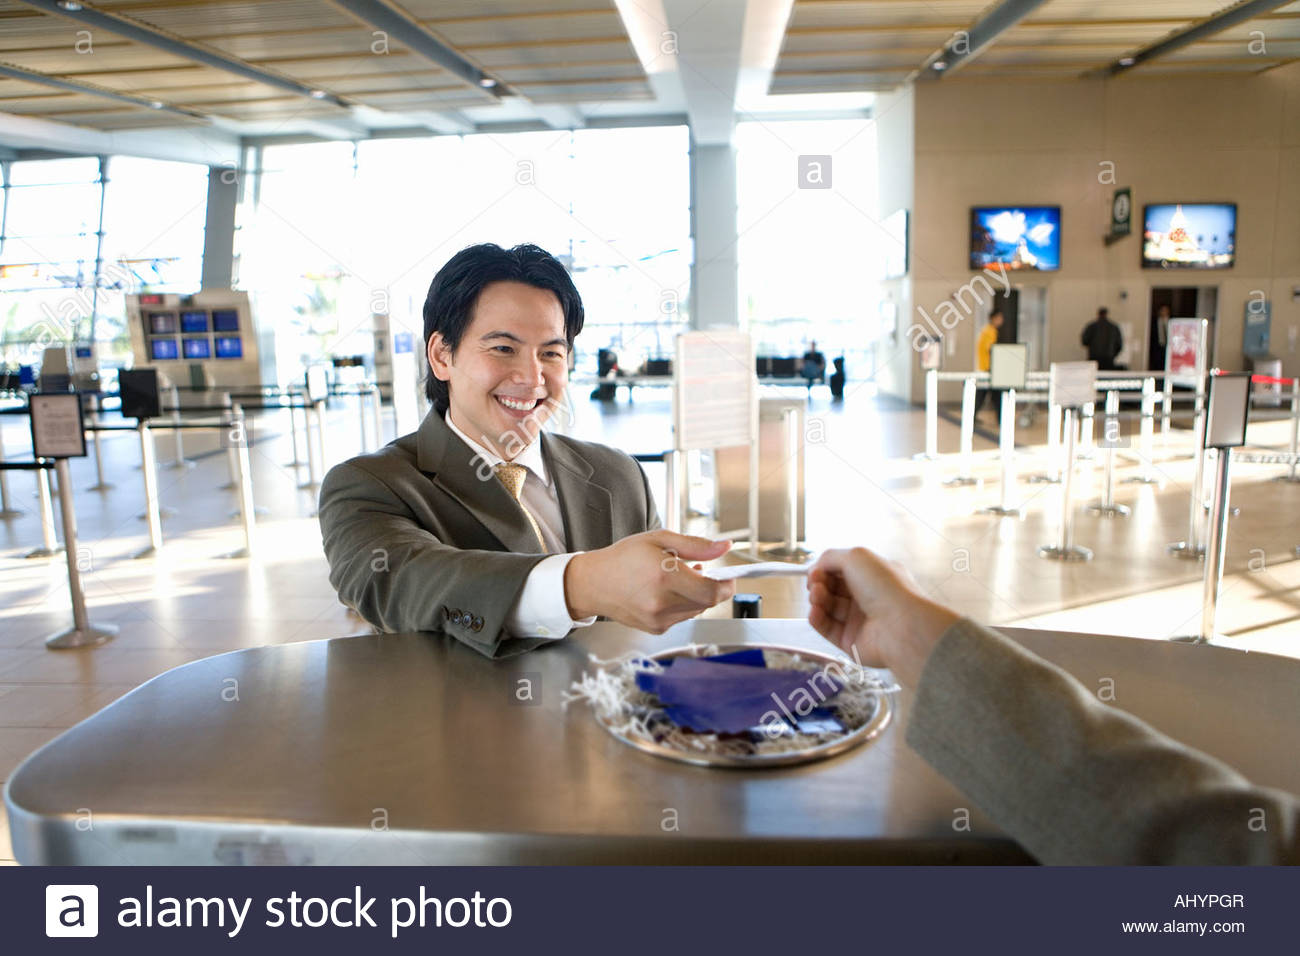 Businessman checking in at airport, receiving boarding pass from check-in attendant, view from behind check-in desk - Stock Image